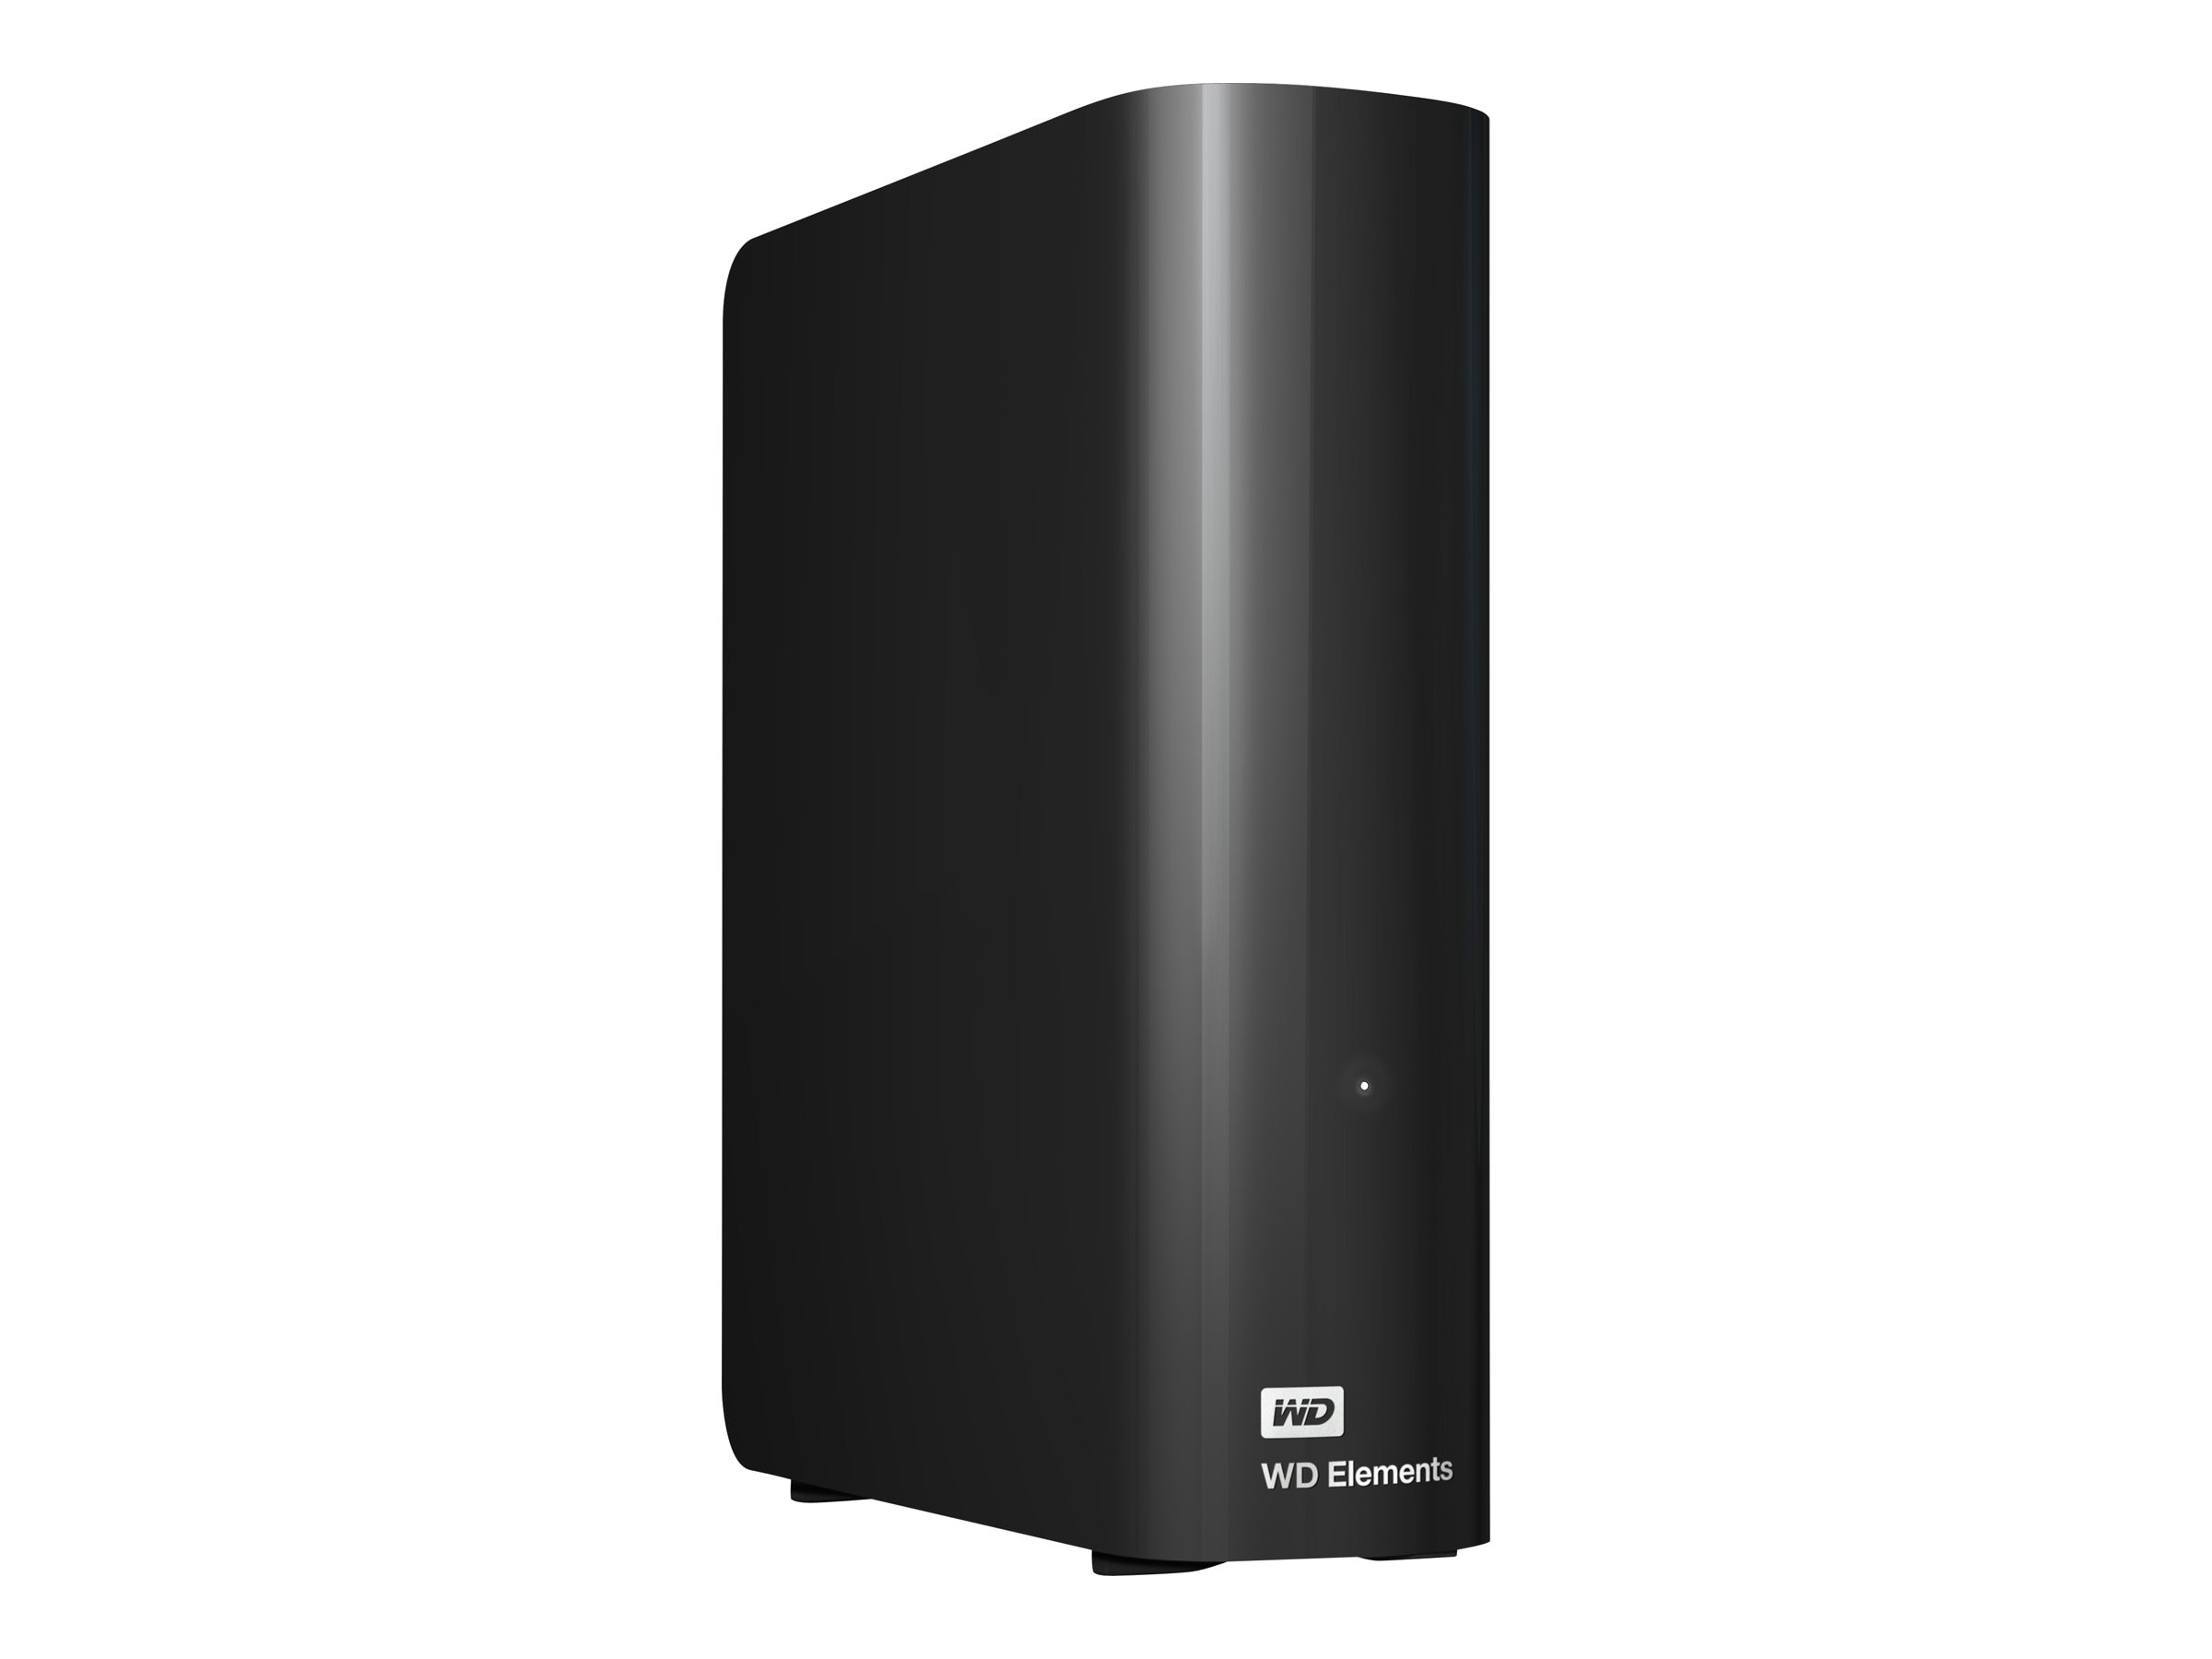 WD 5TB Elements Desktop USB 3.0 External Hard Drive, WDBWLG0050HBK-NESN